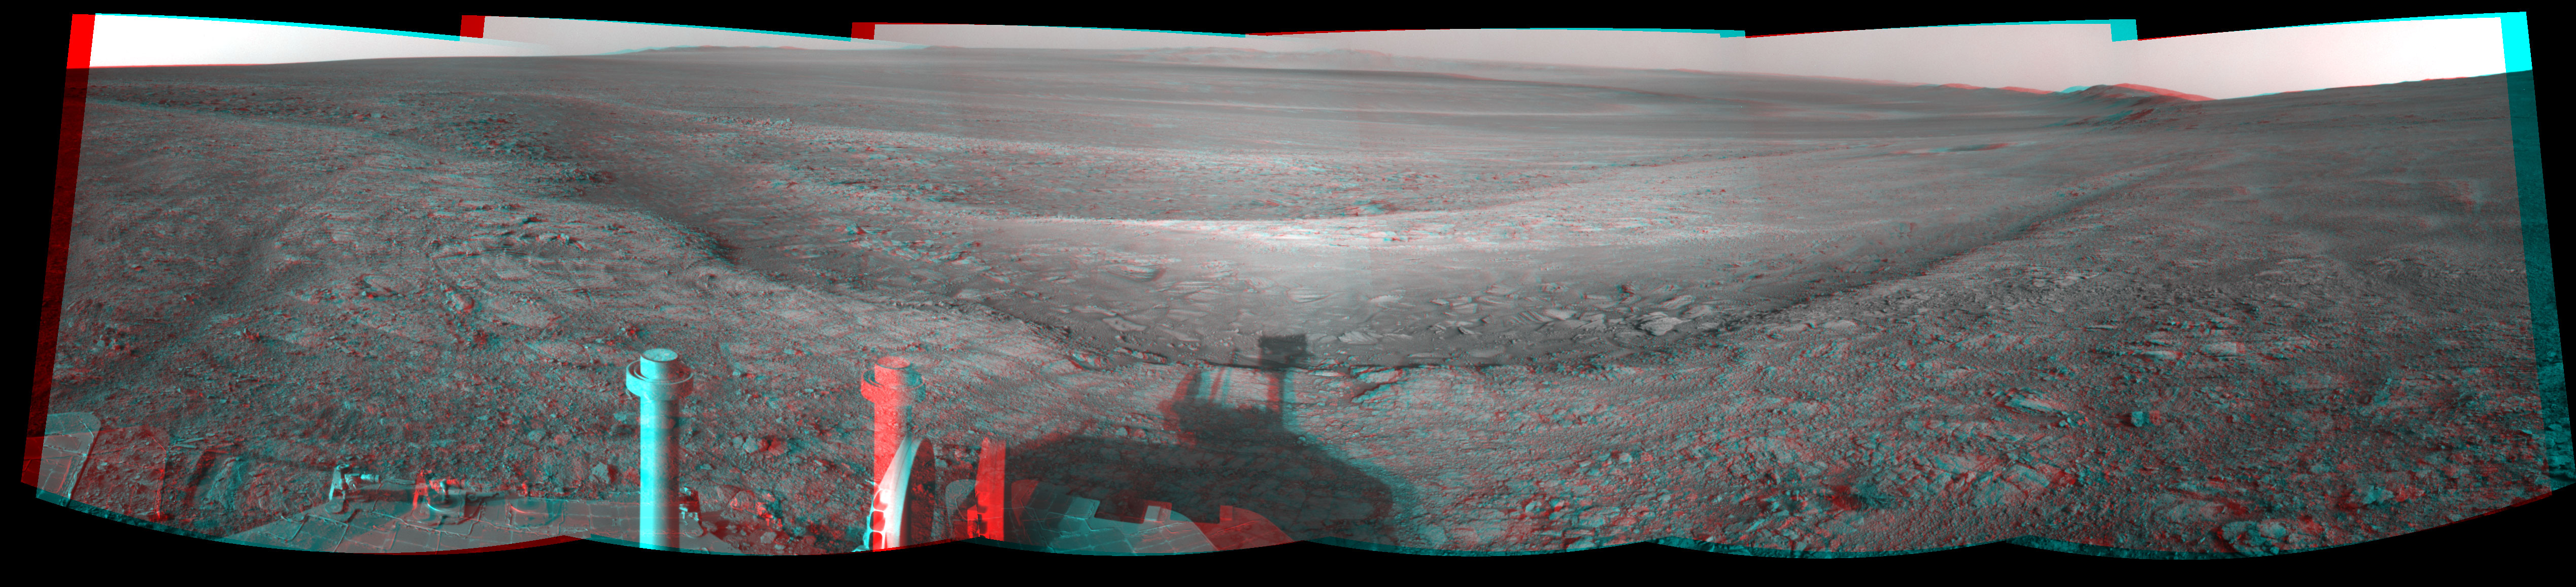 This stereo view from the navigation camera on NASA's Mars Exploration Rover Opportunity shows a vista across Endeavour Crater, with the rover's own shadow in the foreground.